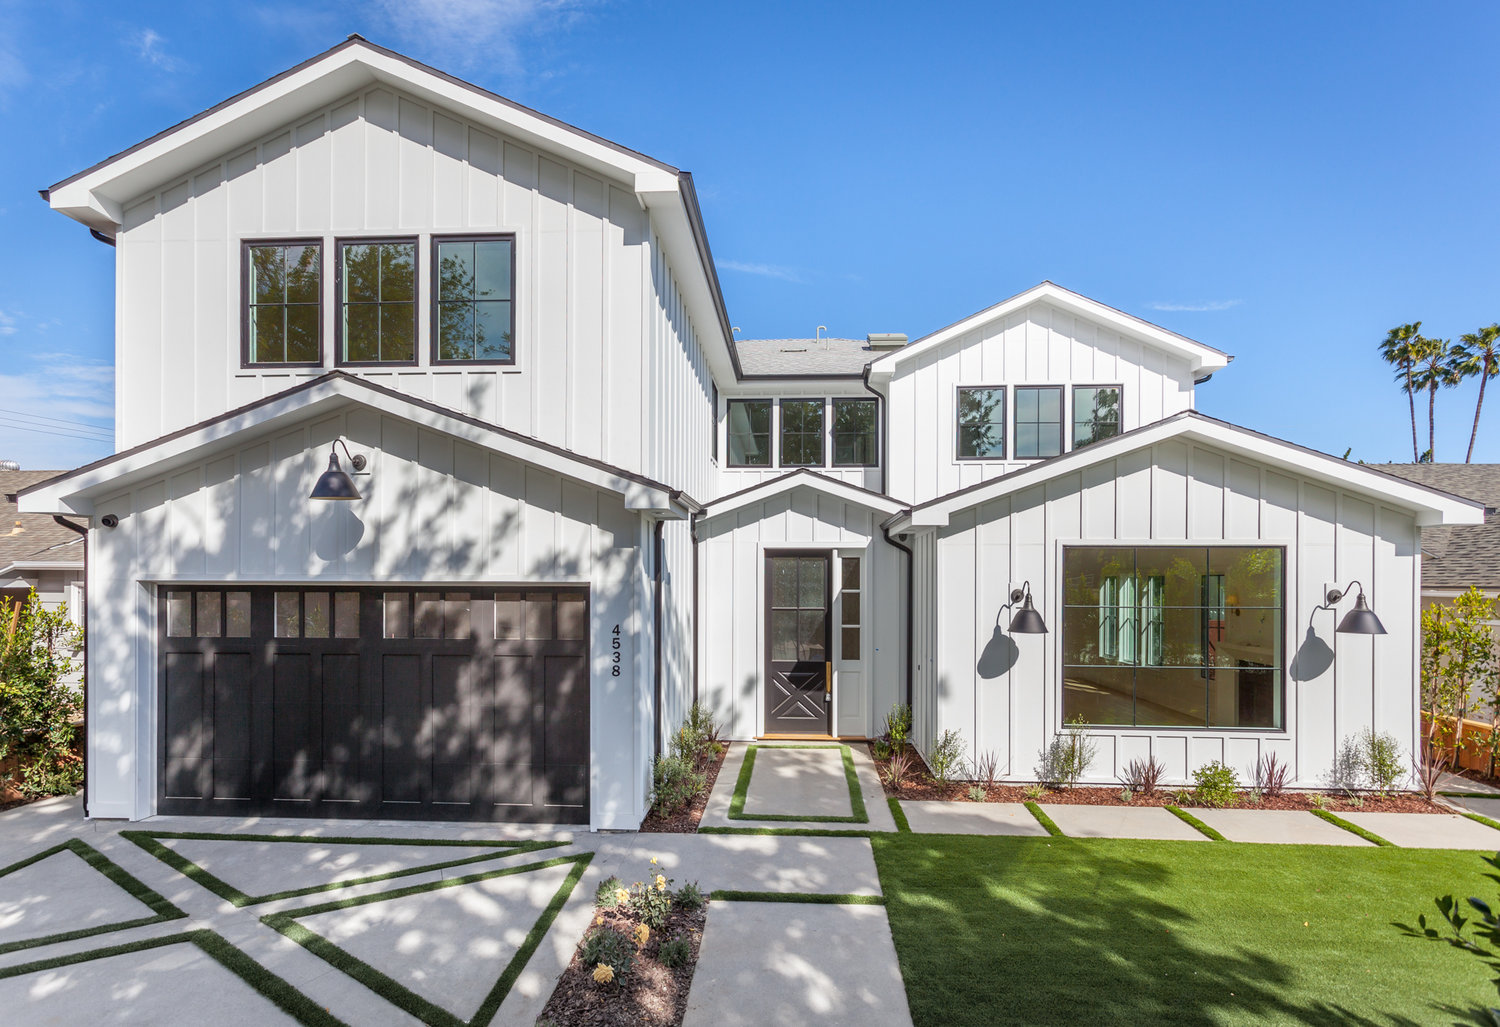 Beeman studio city stylish modern craftsman board and batten facade with clean contemporary streamlined